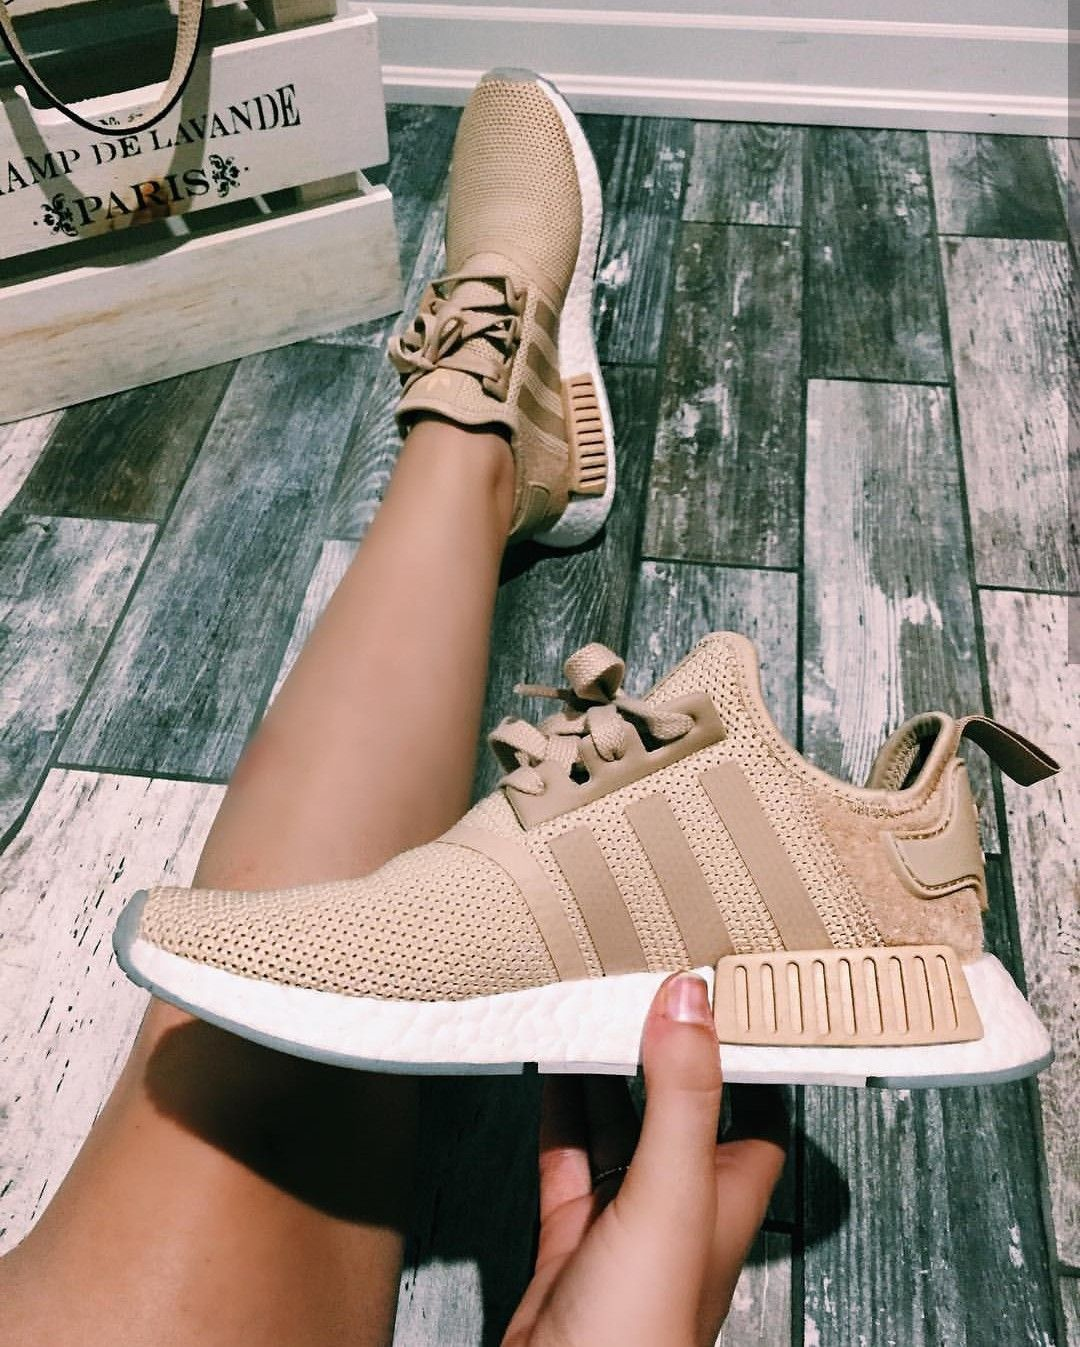 info for d175a 90d62 adidas Originals NMD R1 in braun/beige-weiß// brown-white Foto: _sarahhamm  |Instagram